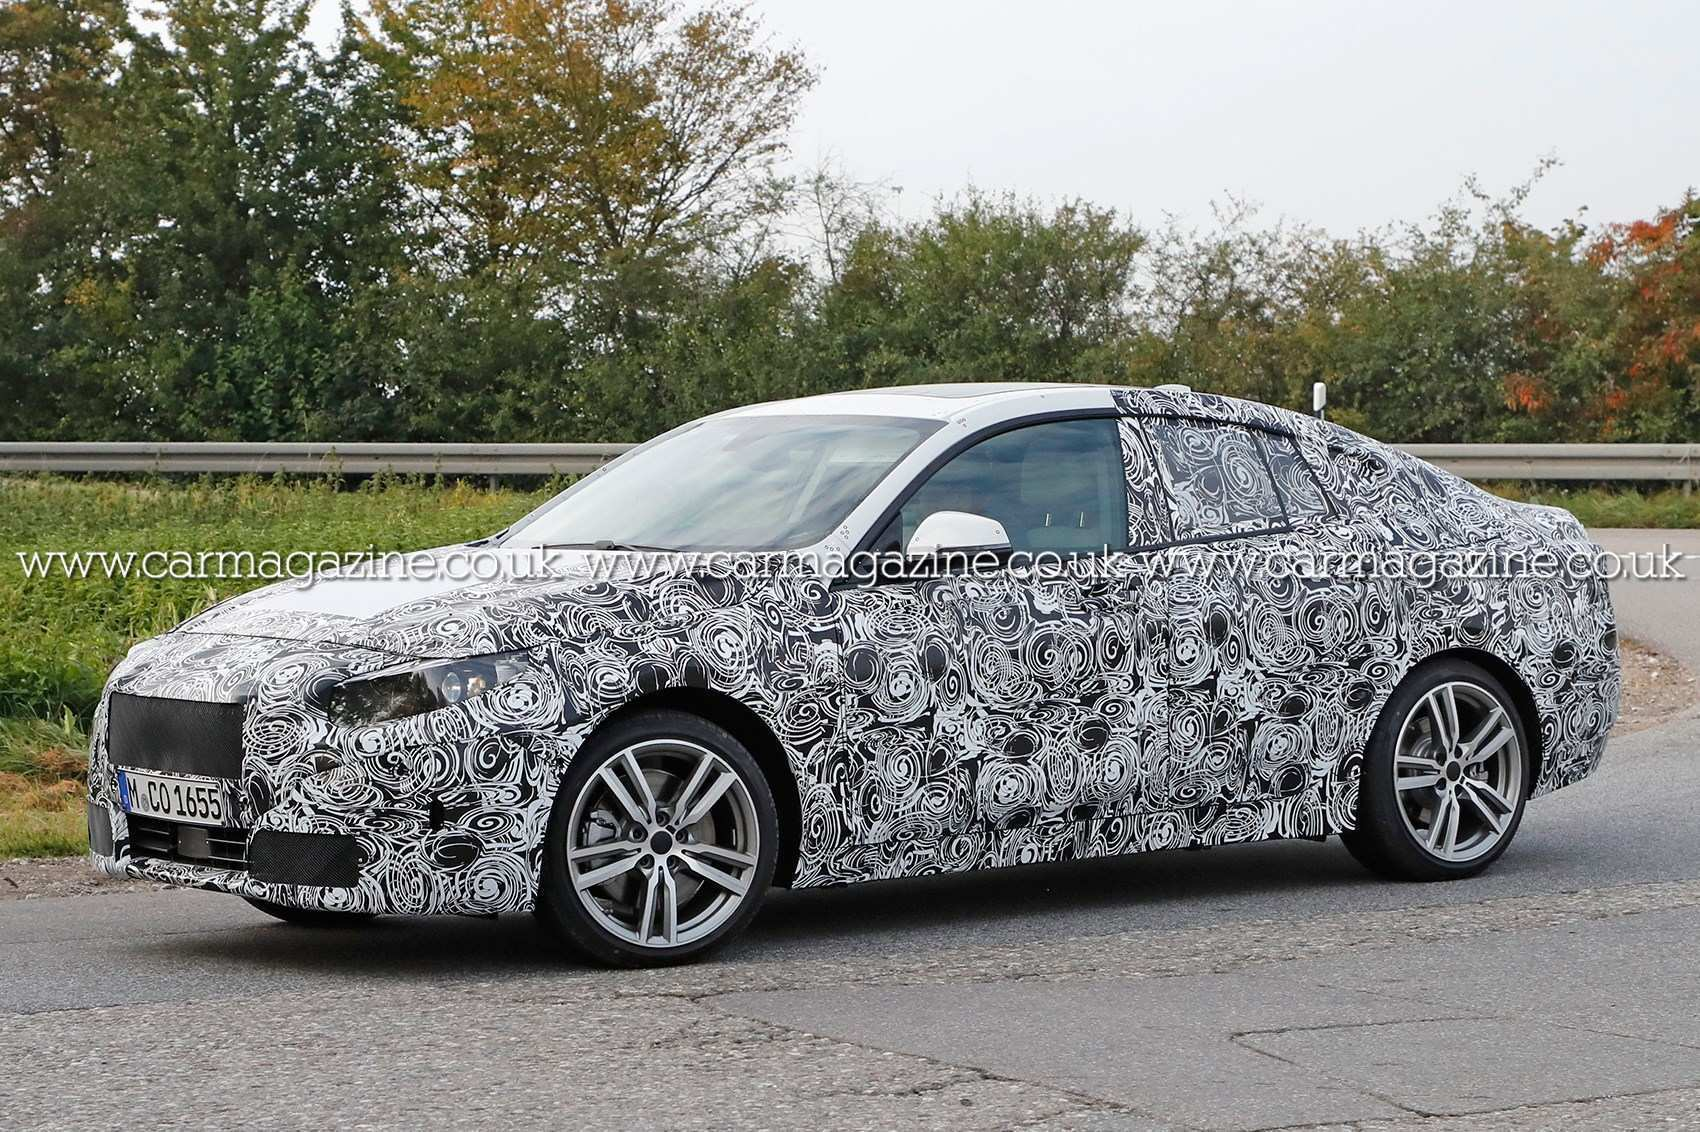 48 Great 2020 Bmw 2 Series Gran Coupe Ratings for 2020 Bmw 2 Series Gran Coupe